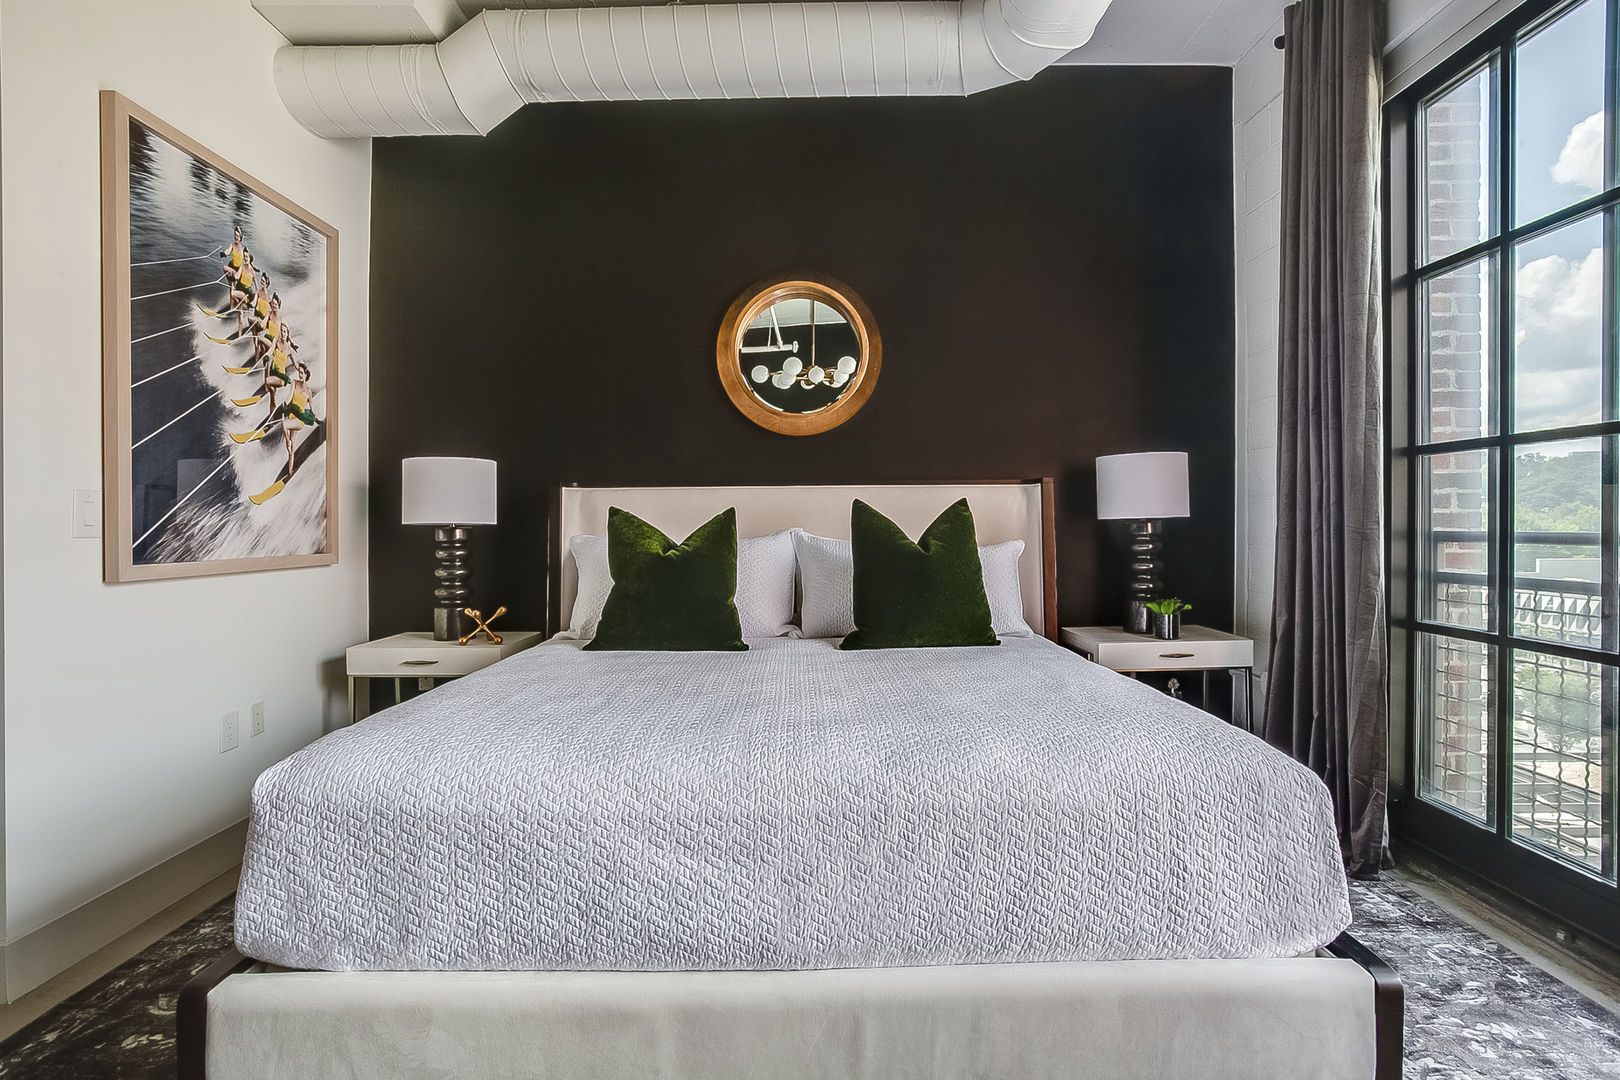 Sleeping area with bed, two nightstands and nearby window